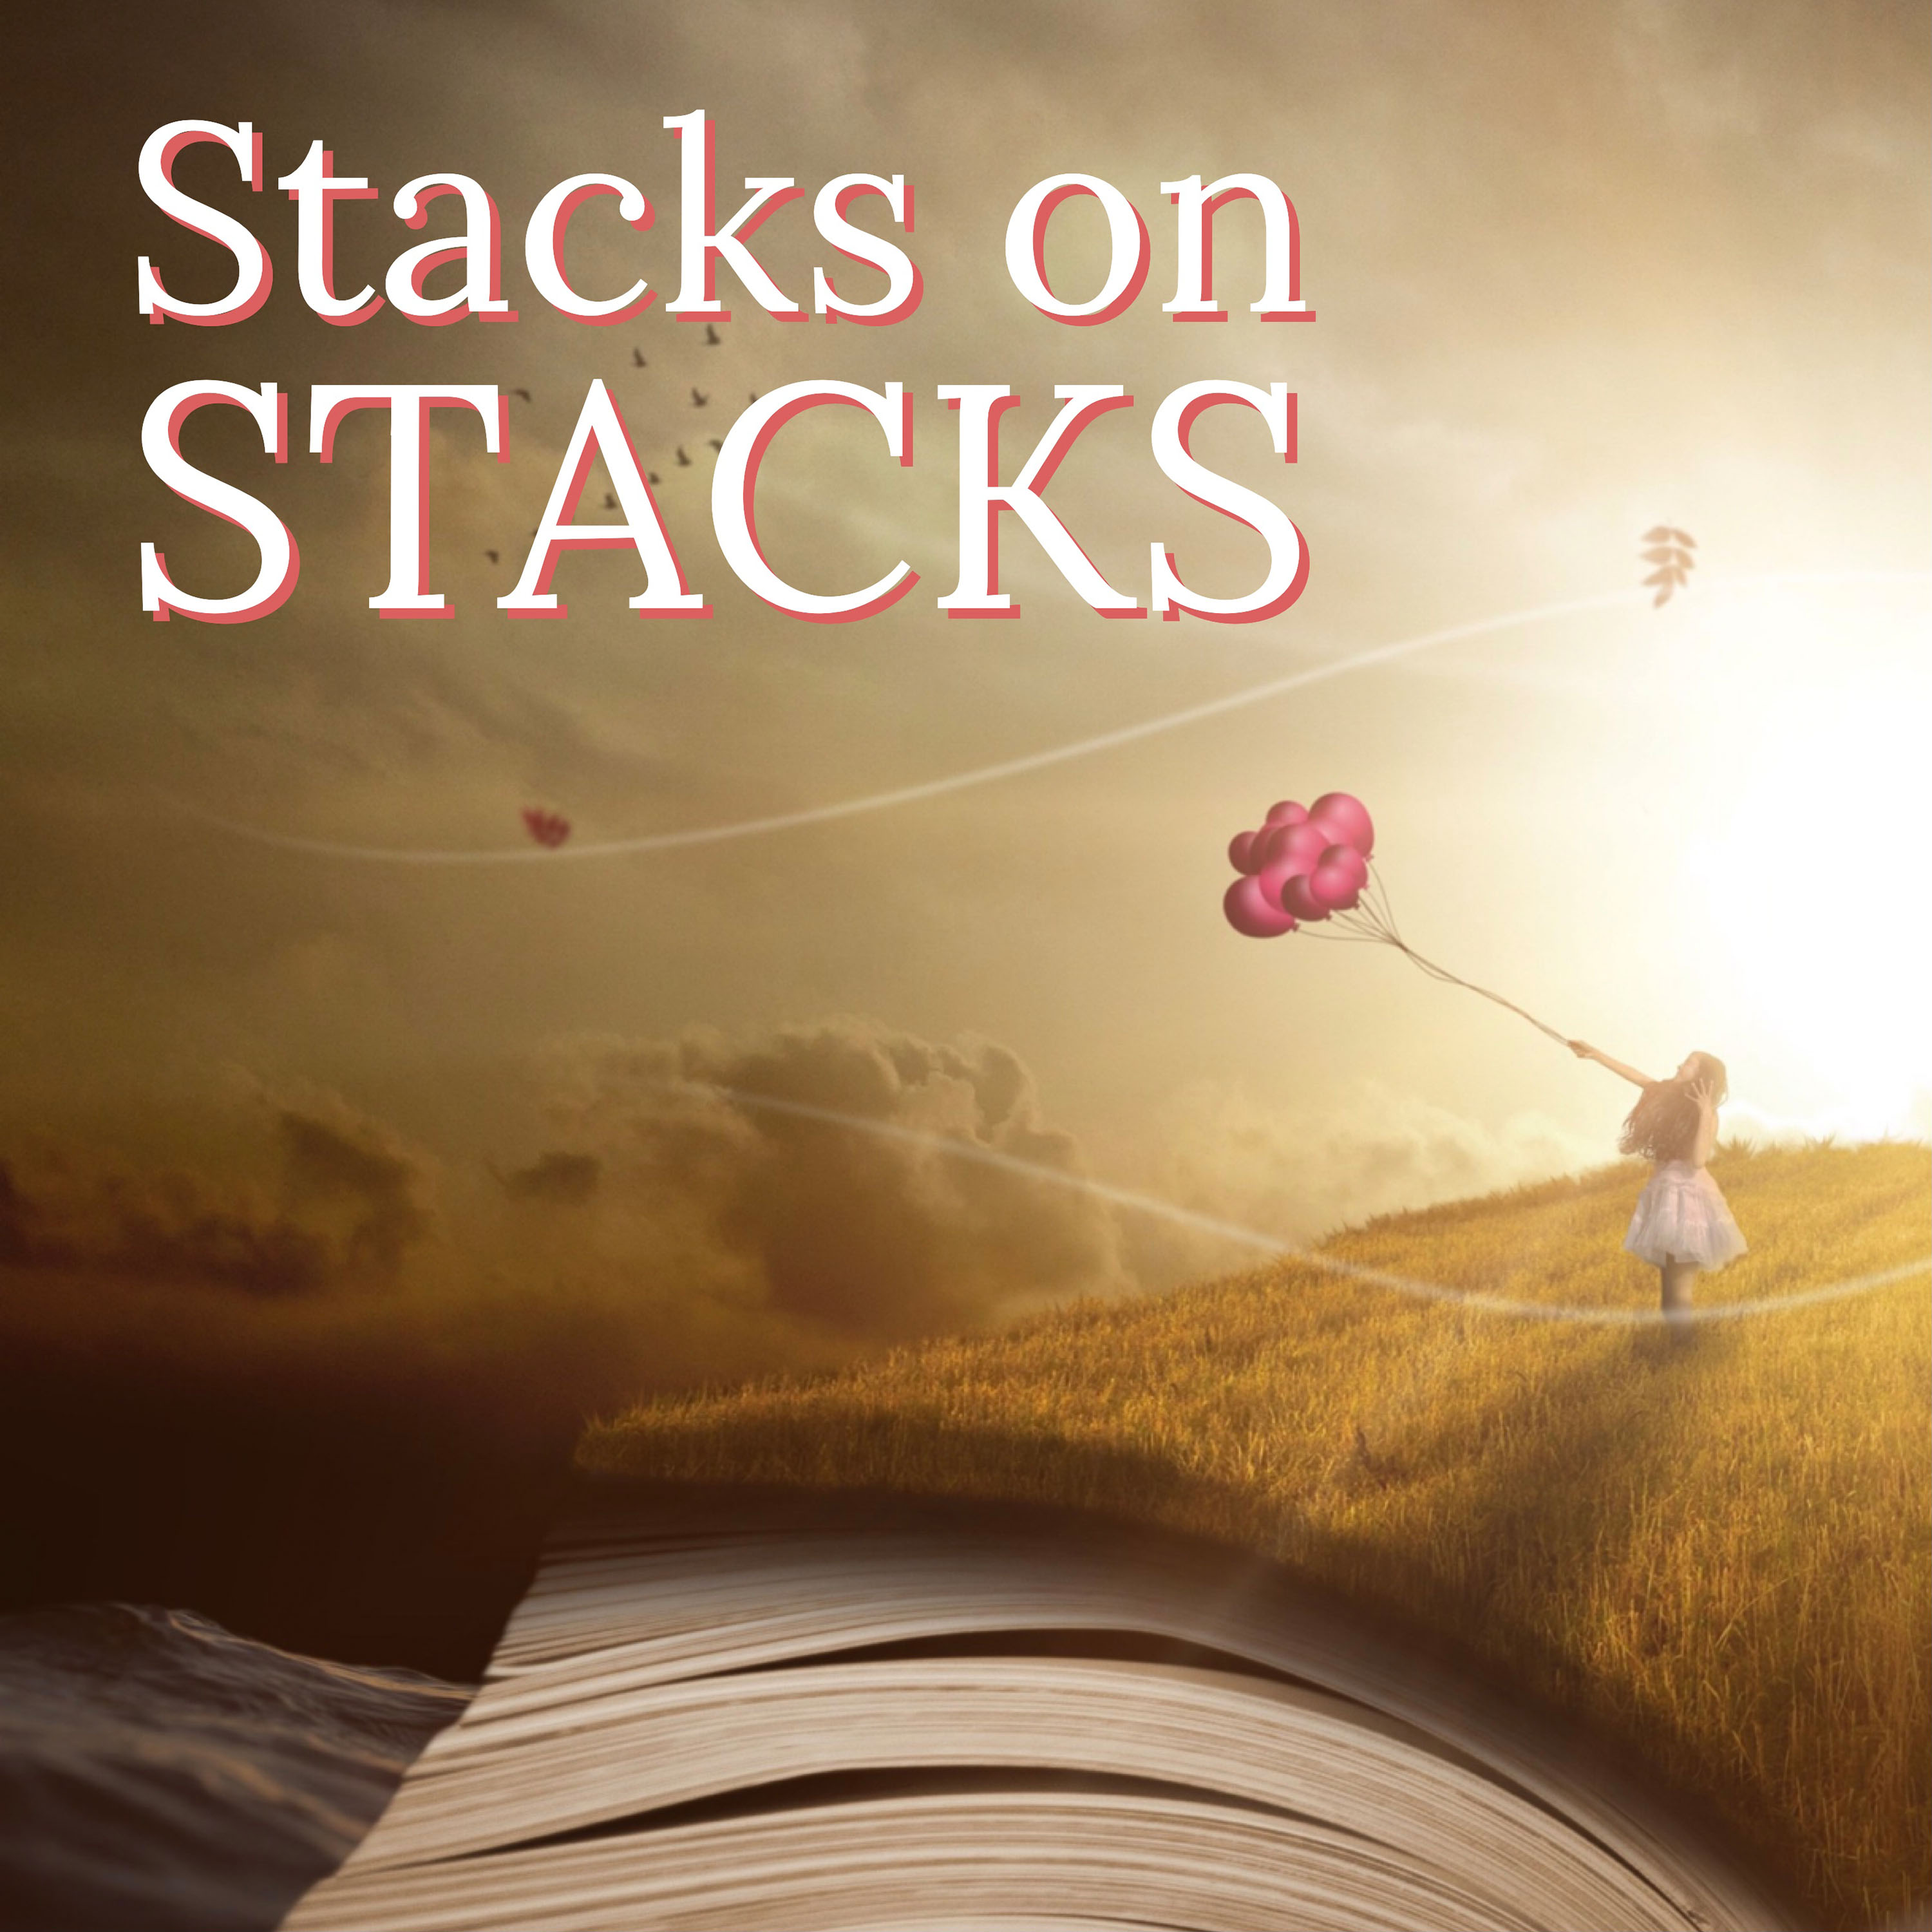 podcast cover - stacks on stack